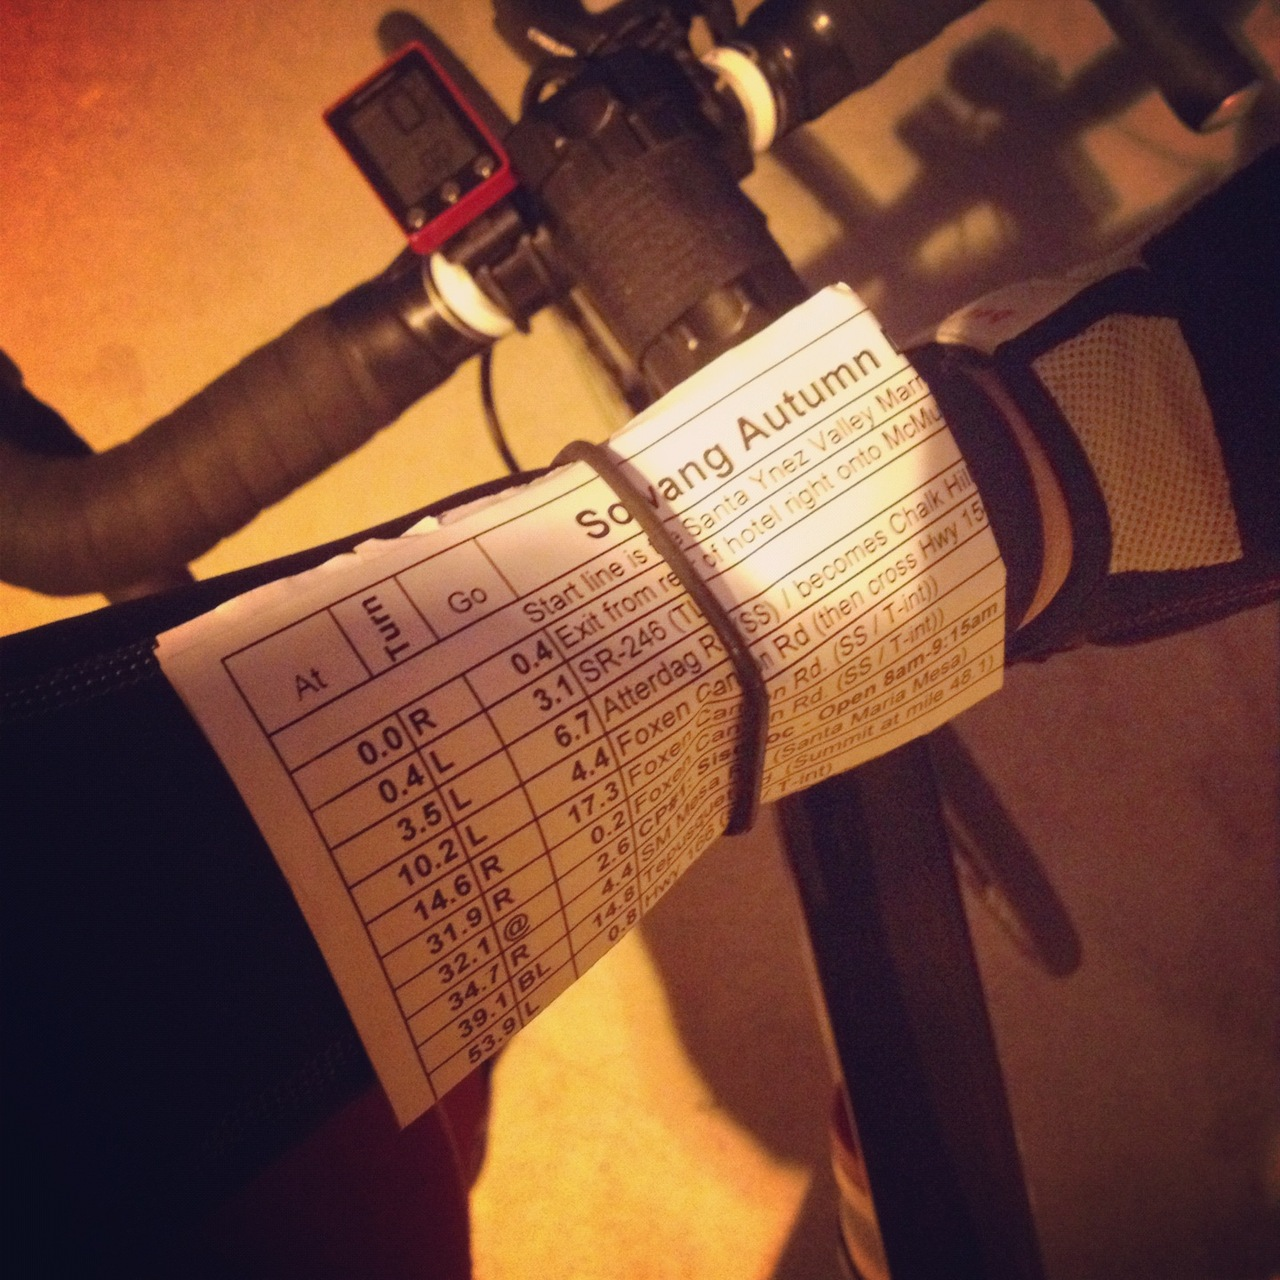 Pro-level cue-sheet mount